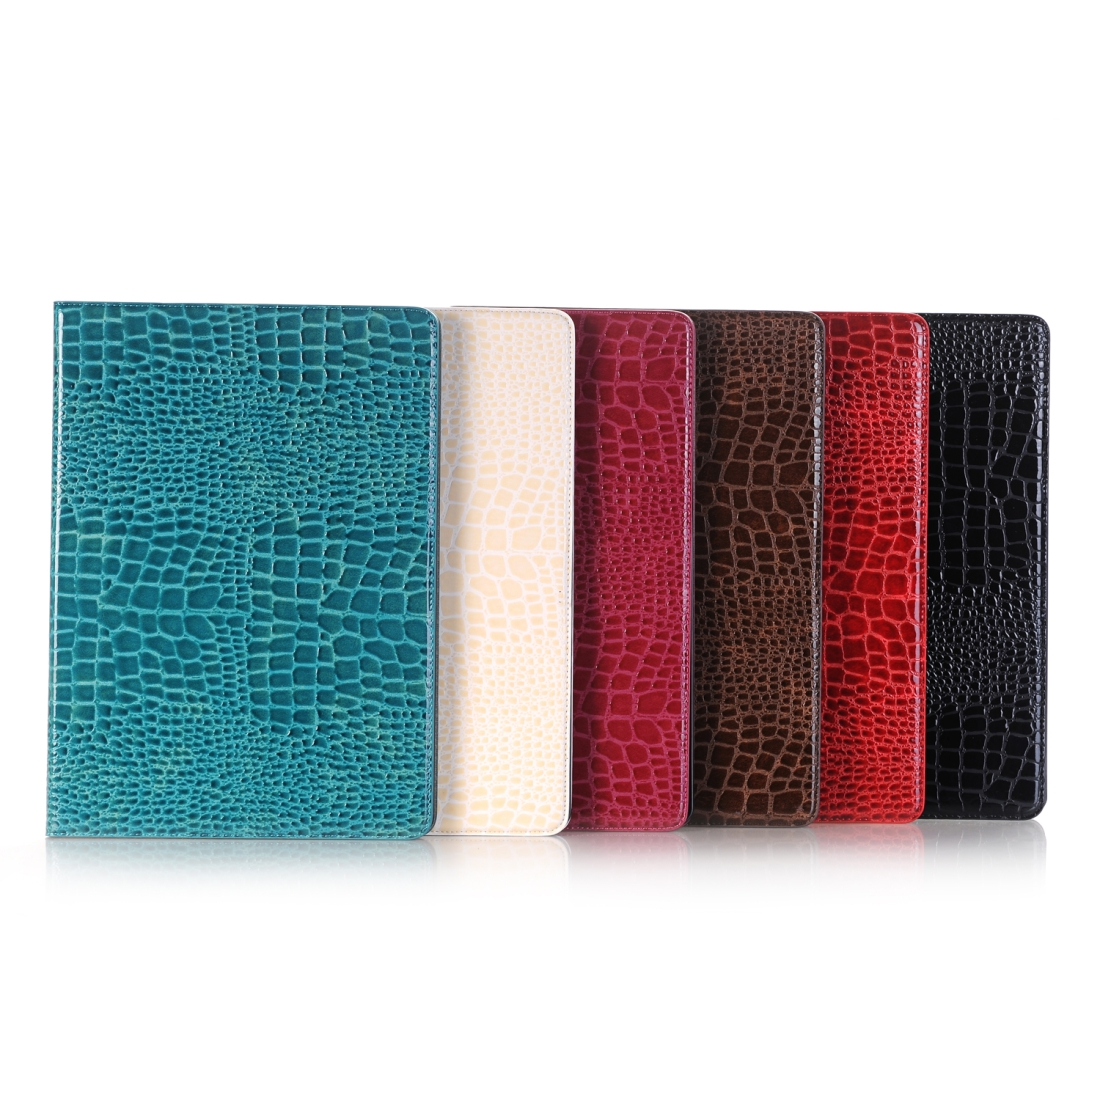 Crocodile Texture Leather Case, For iPad Air 2 Case With Slim Profile (Blue)